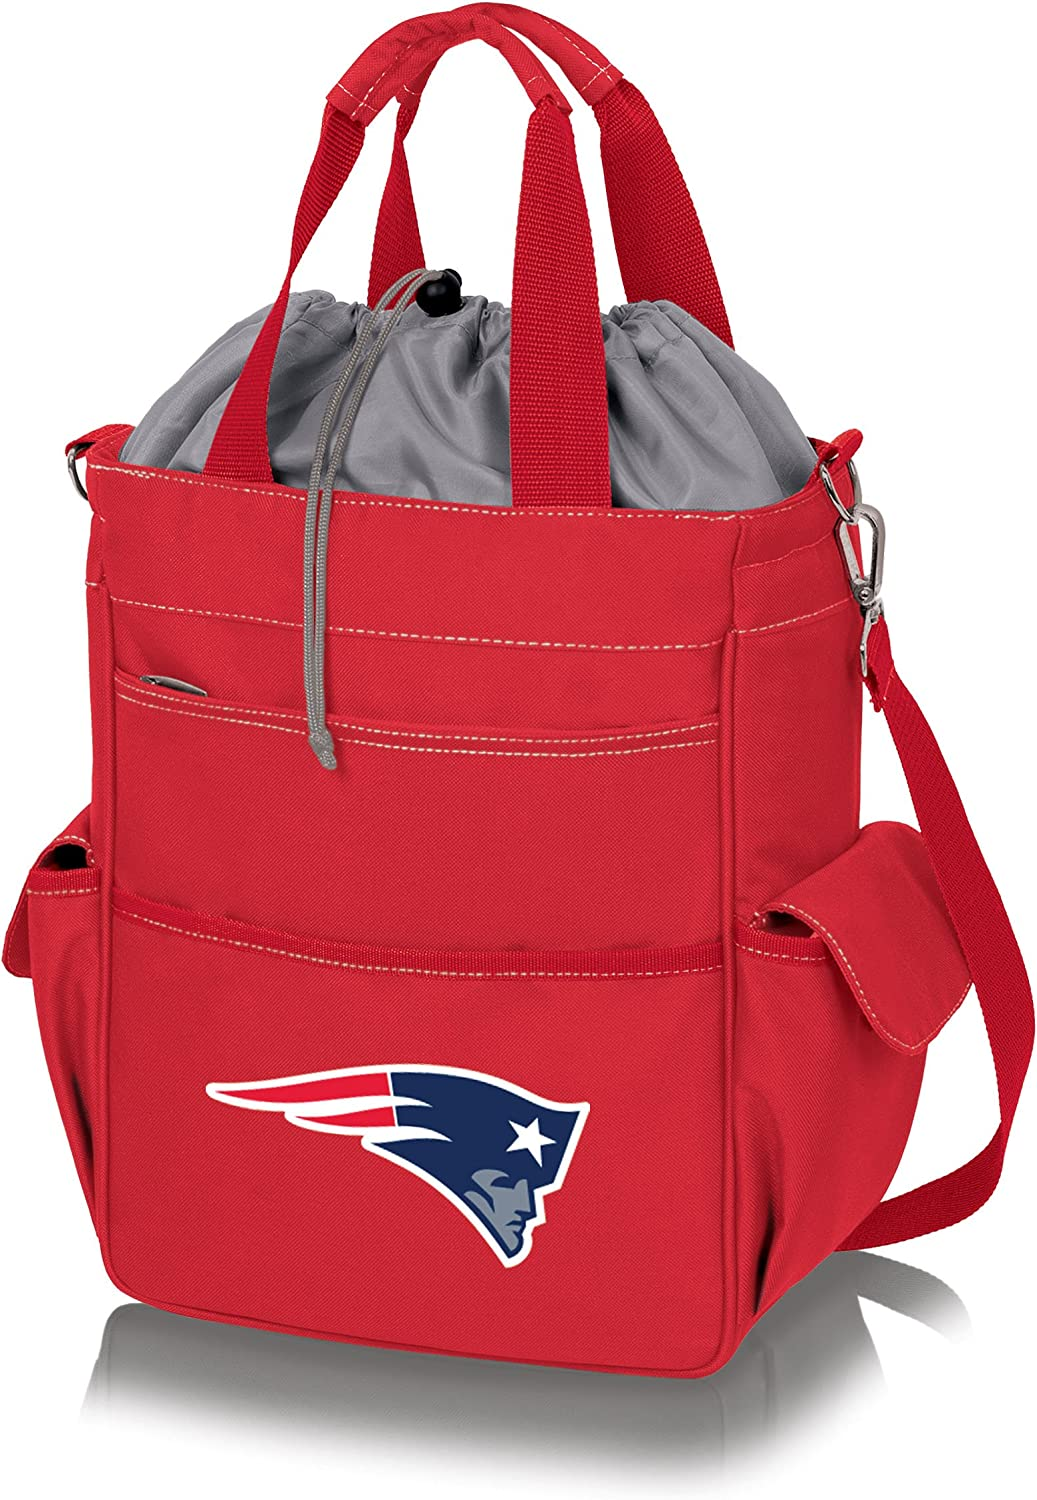 NFL New England Patriots Red Tote Popular products National products Activo